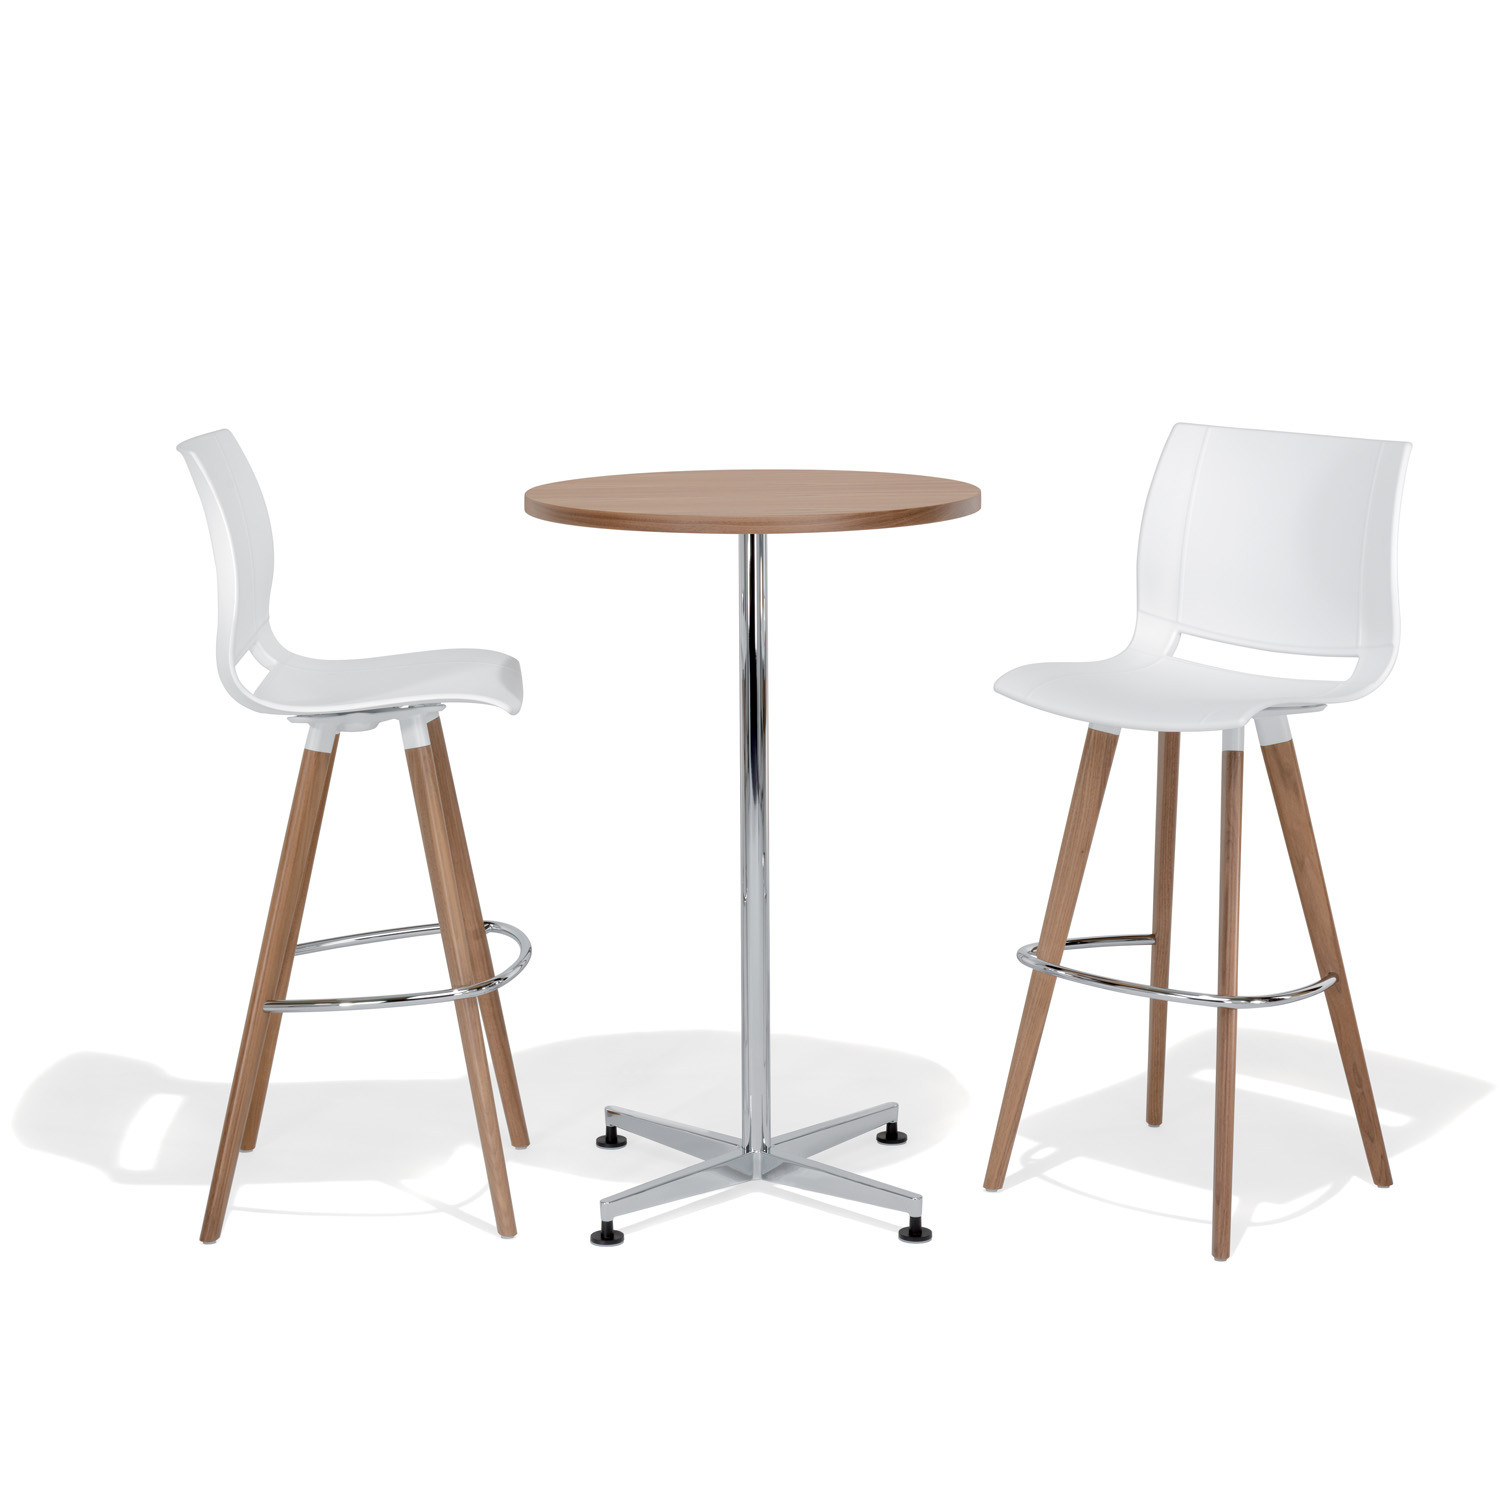 2080 Uni_Verso Barstools with wooden legs